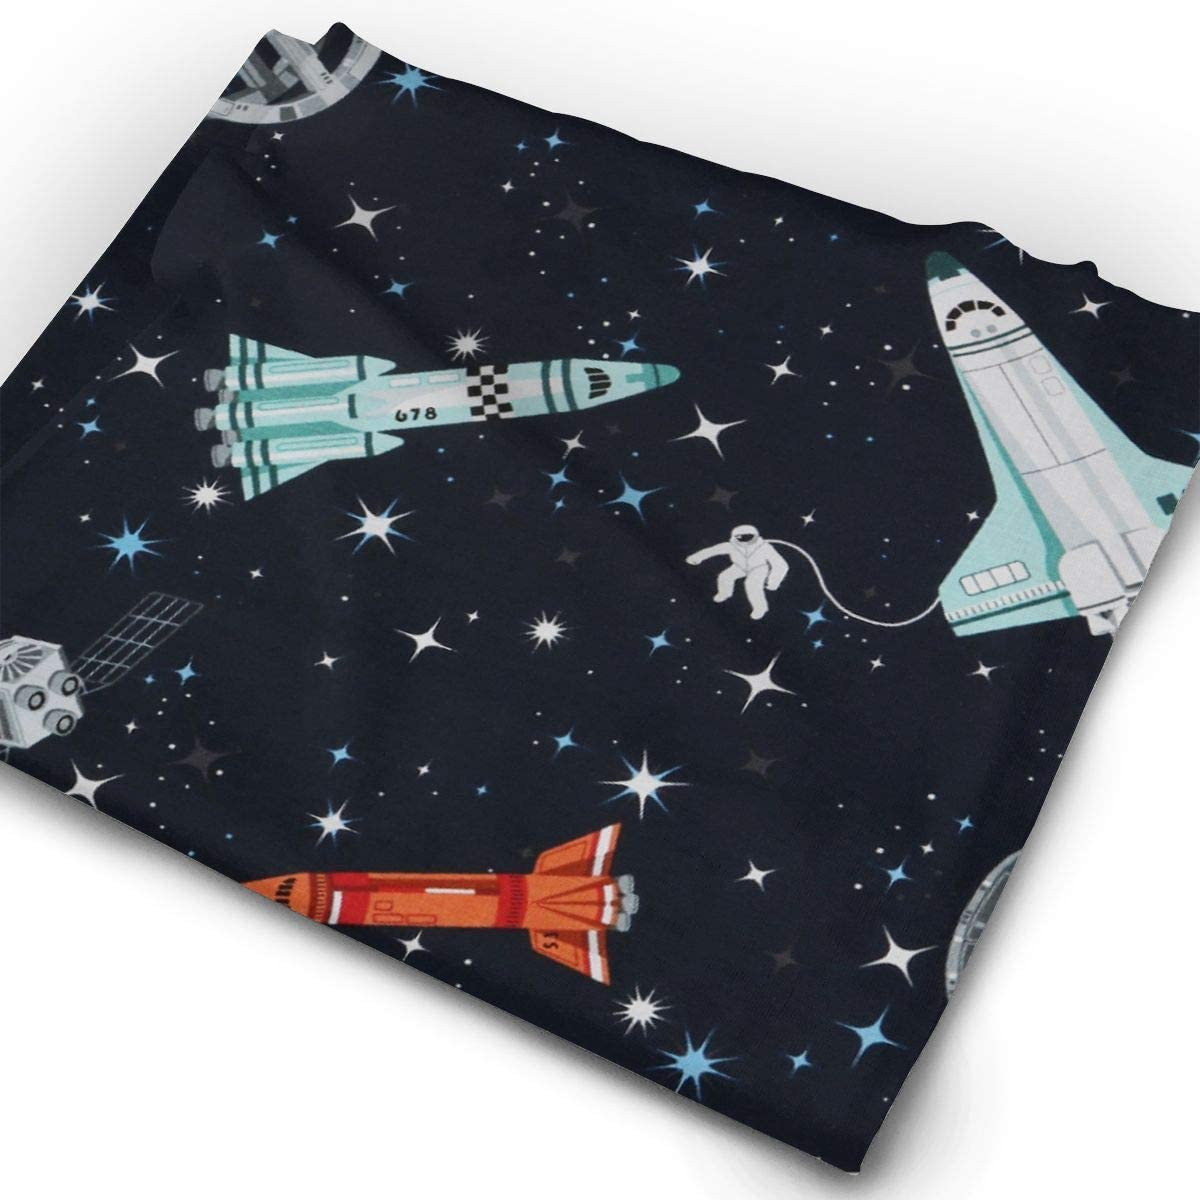 Space Vehicle Unisex Fashion Quick-Drying Microfiber Headdress Outdoor Magic Scarf Neck Neck Scarf Hooded Scarf Super Soft Handle